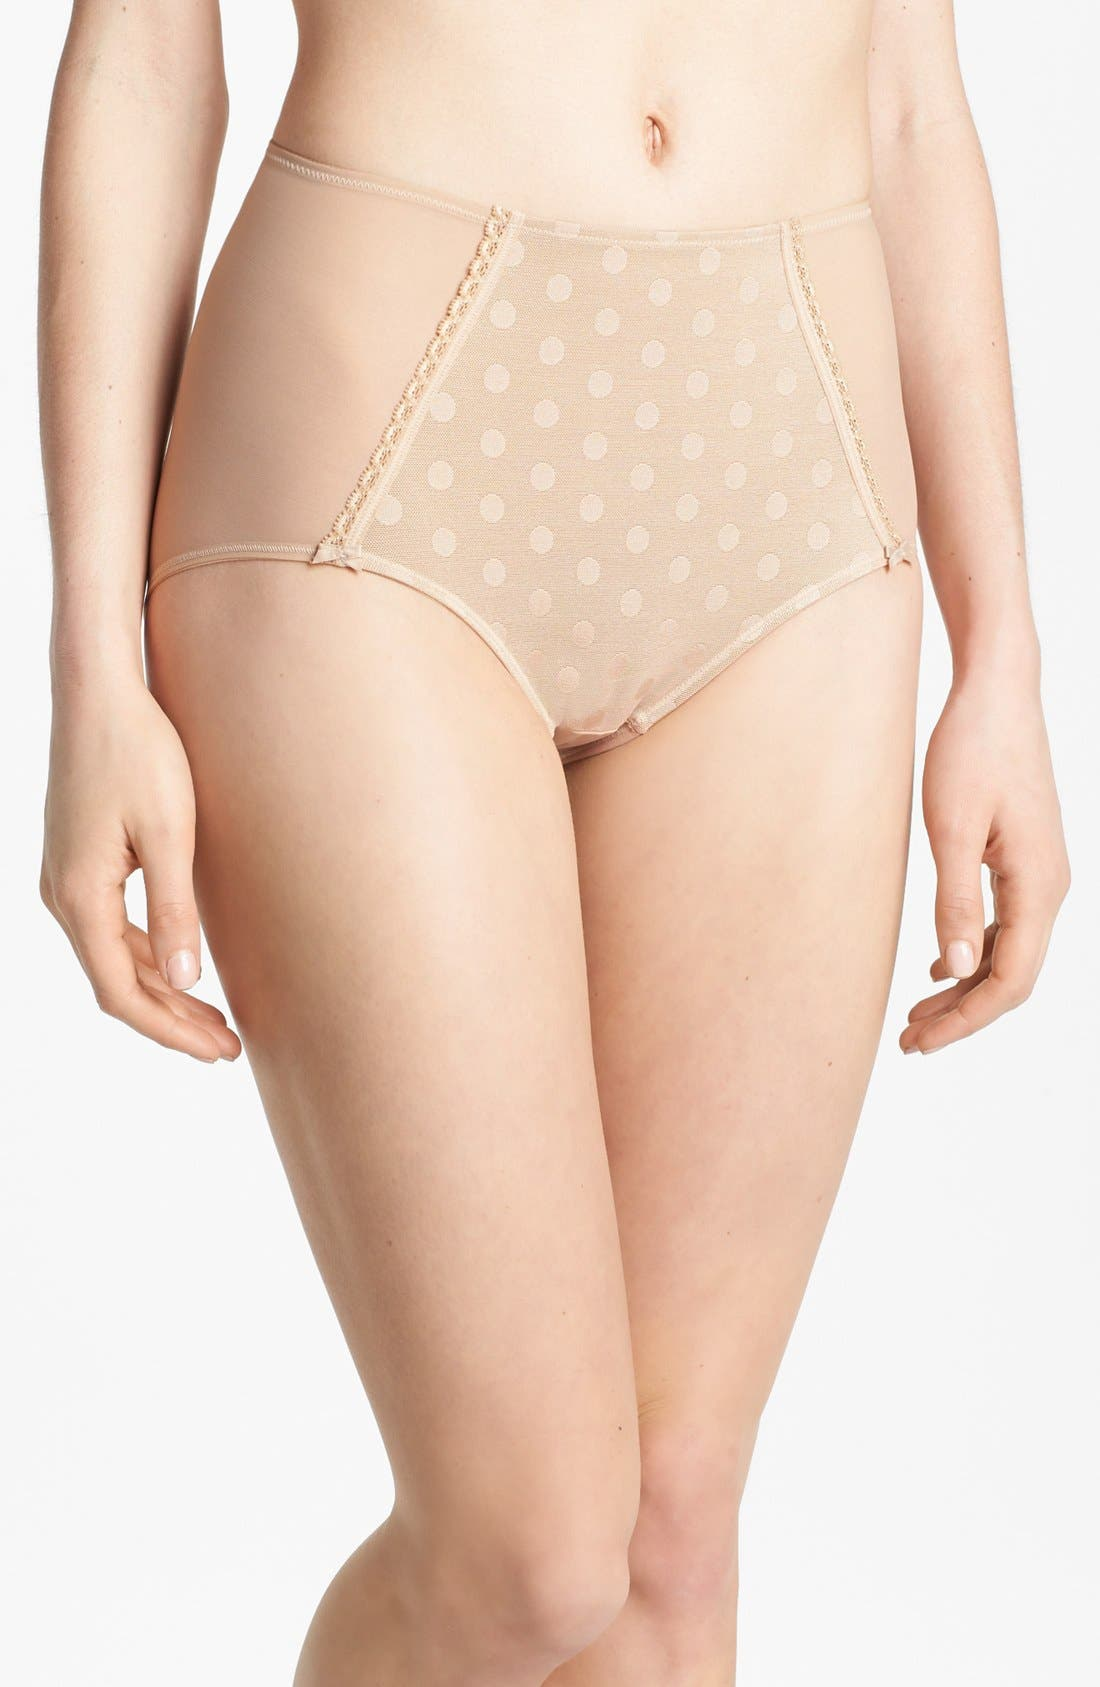 Alternate Image 1 Selected - DKNY 'Underslimmers Cute Girl' Slimming Briefs (Shaper) (Online Only) (2 for $36)